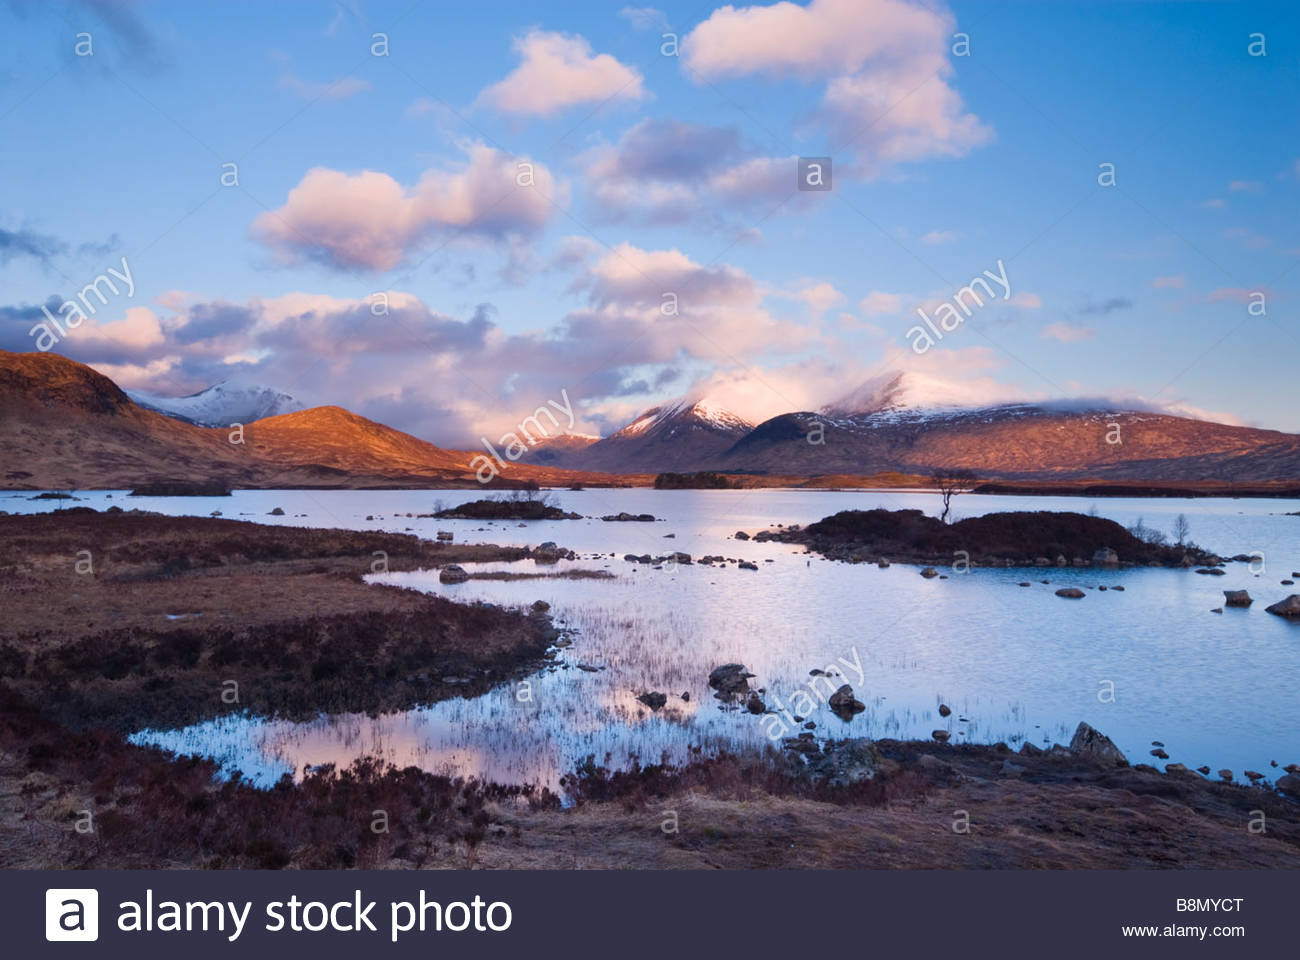 Clearing storm over Lochan na h'Achlaise and the Black Mount, Rannoch Moor, Scottish Highlands, UK. - Stock Image